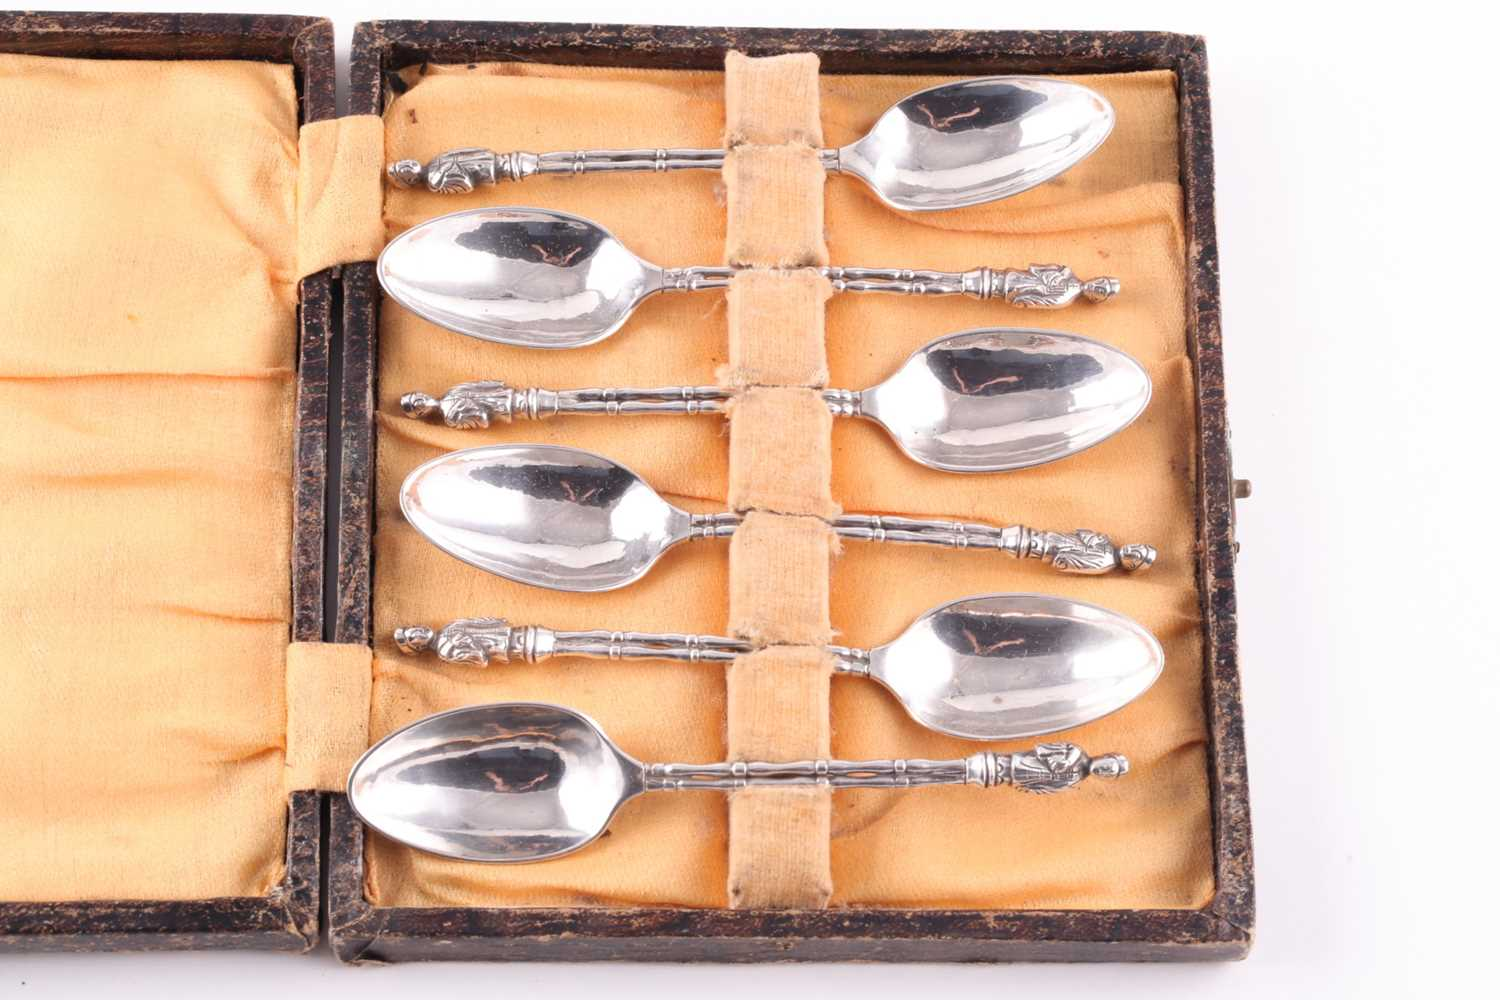 A set of six Chinese silver Apostle spoons, each terminal set with a Chinese robed figure, bamboo-